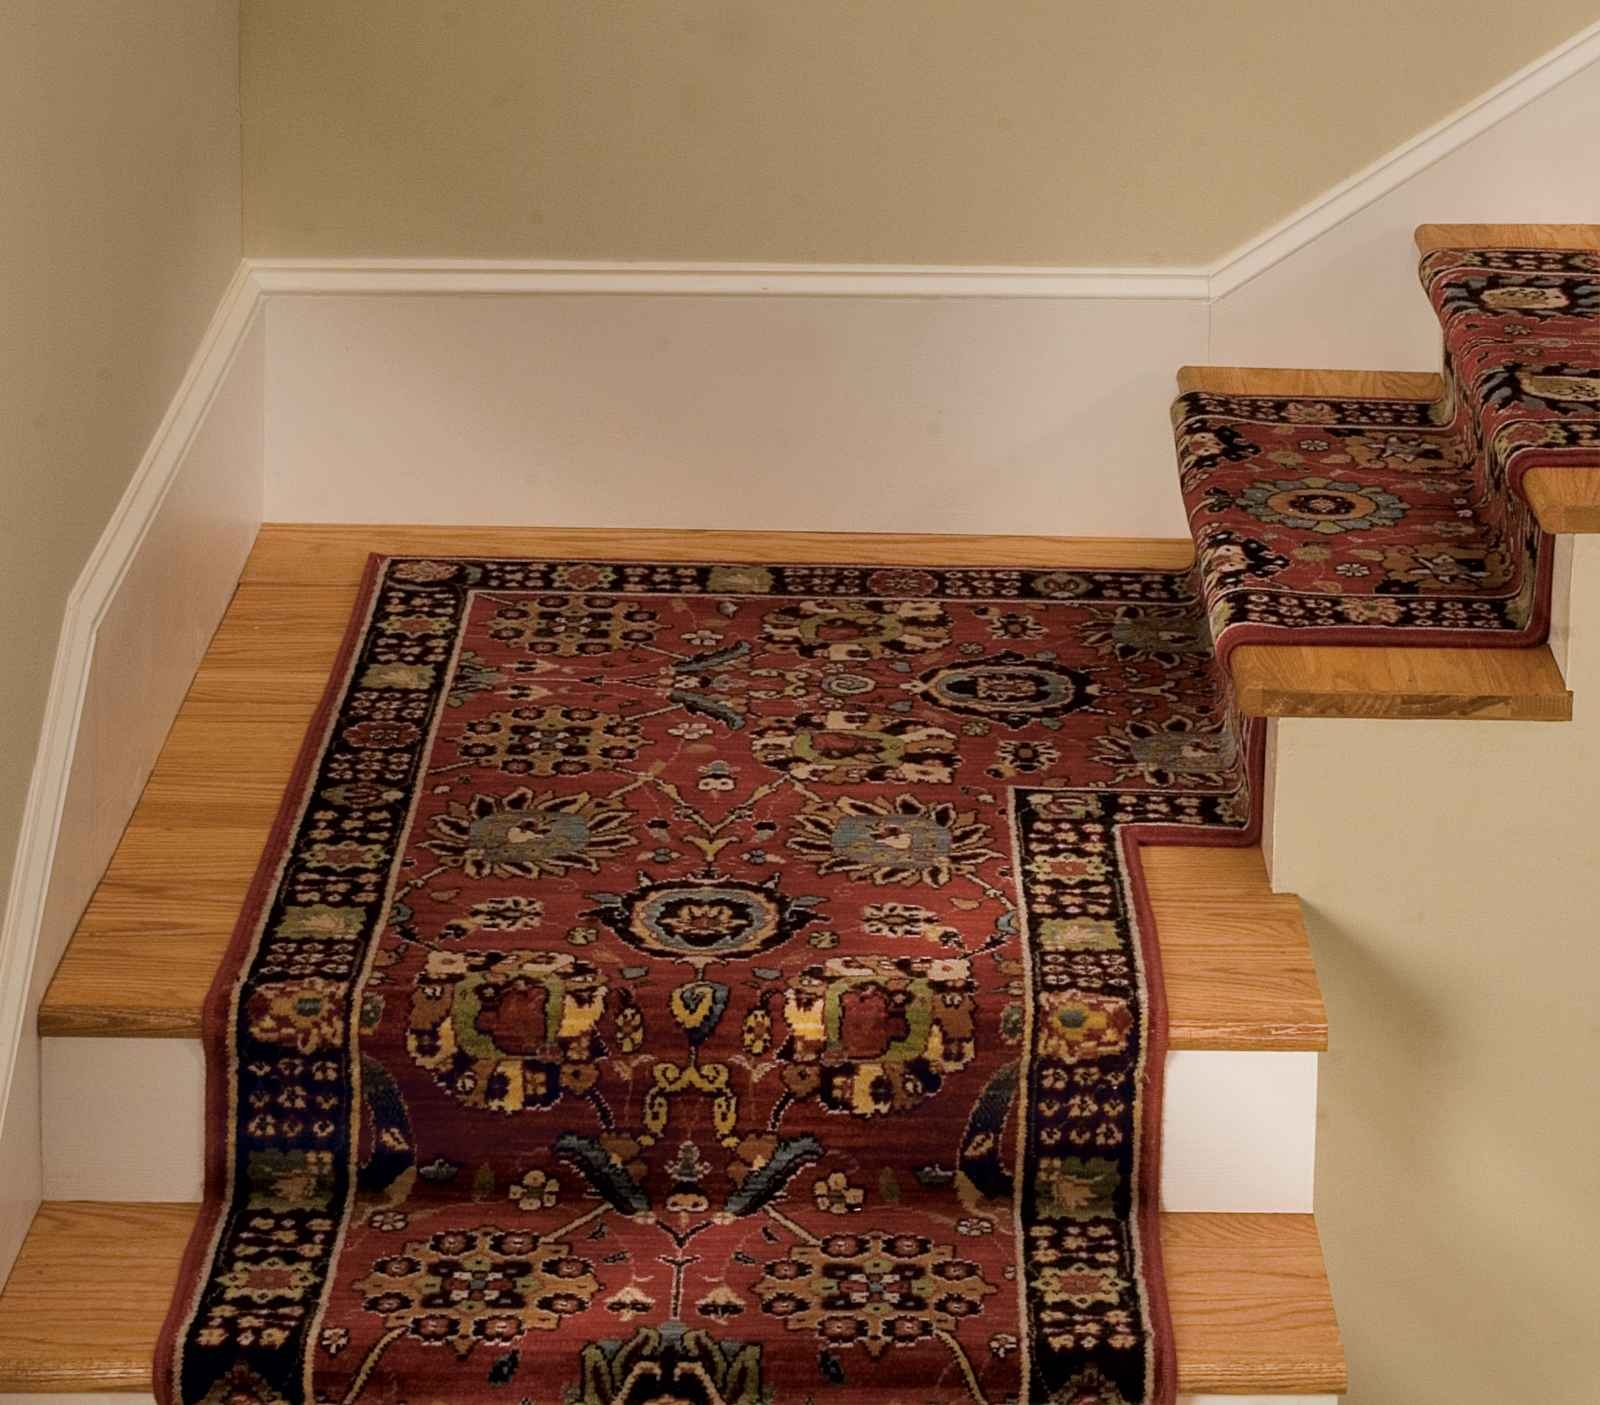 Carpet Stair Runner For Home New Home Pinterest Stair Treads Pertaining To Modern Stair Tread Rugs (Image 6 of 15)